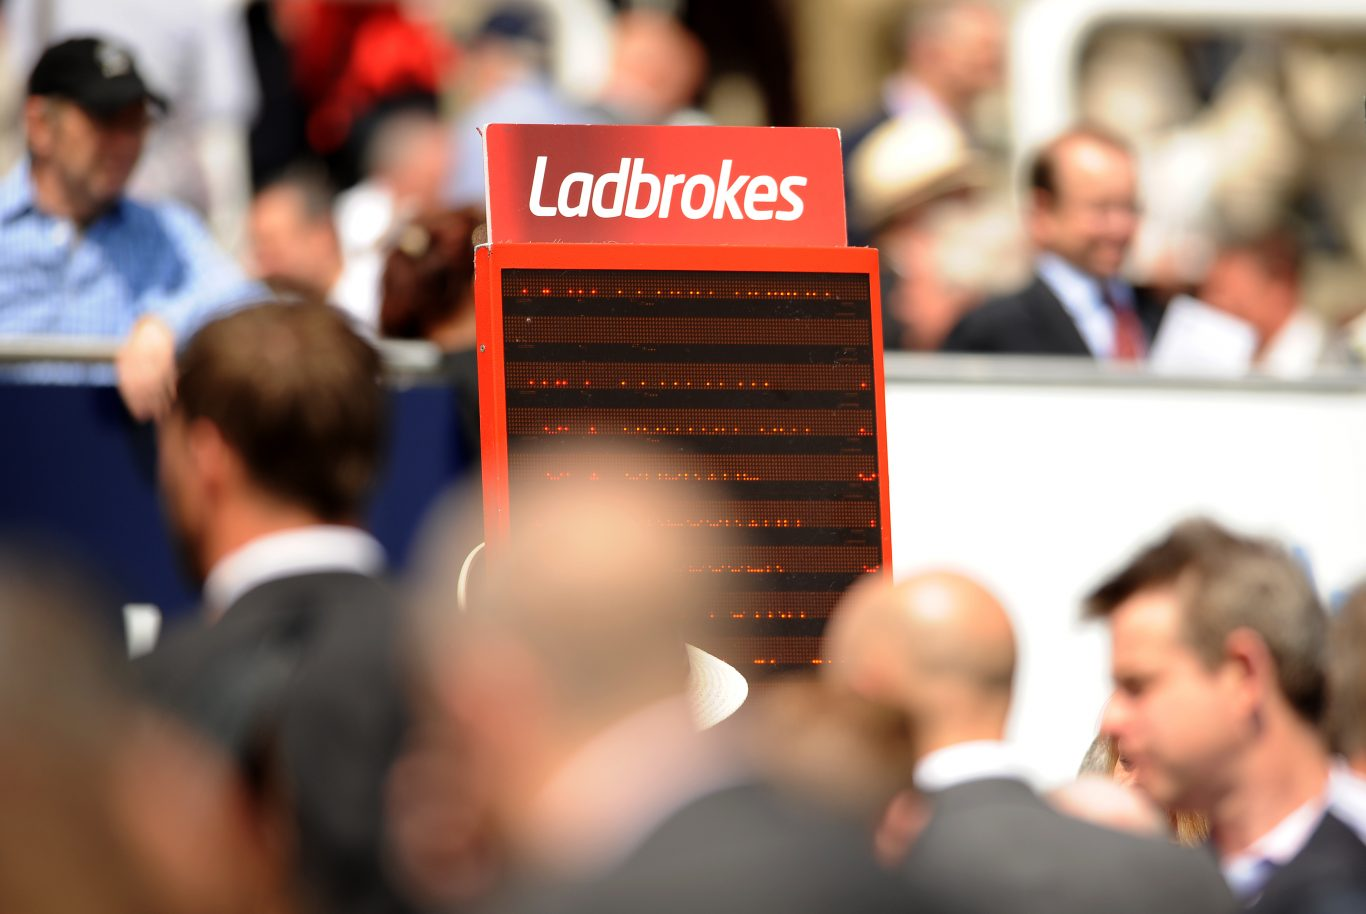 Gambling firms accused of 'wining and dining' MPs before bet